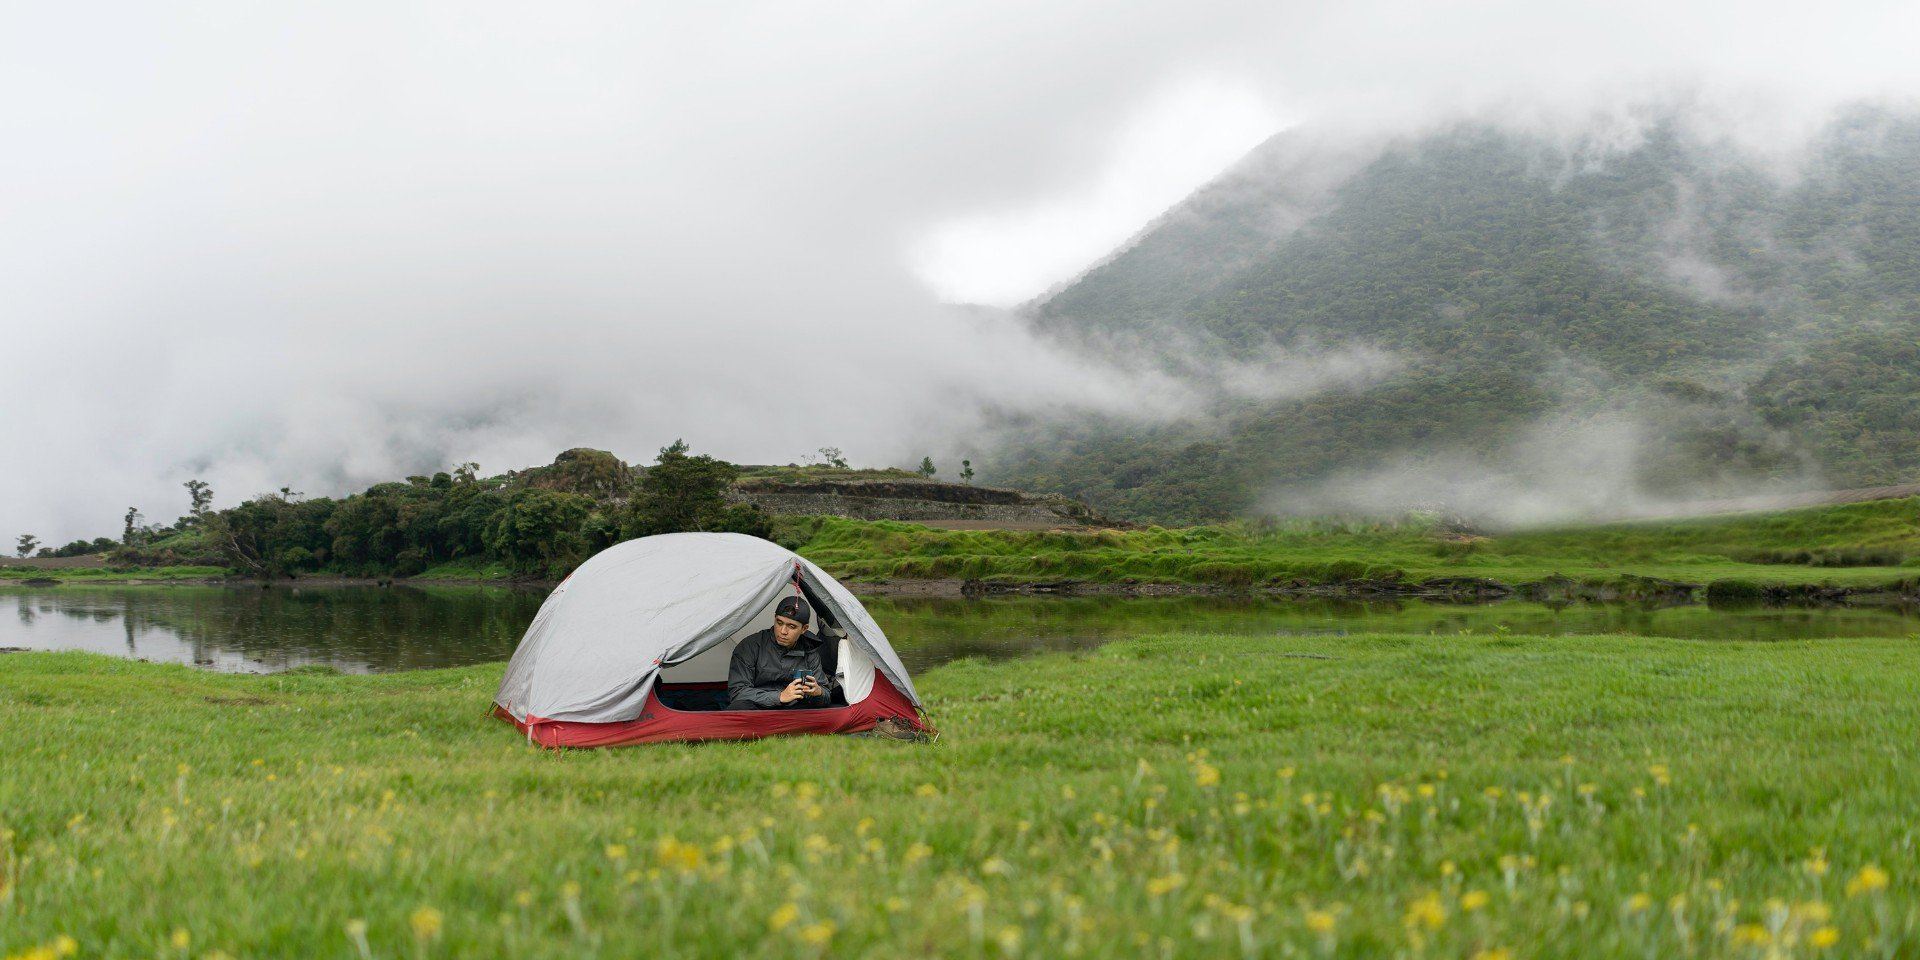 7 best tents for rain and wind: extreme weather tents for 2021